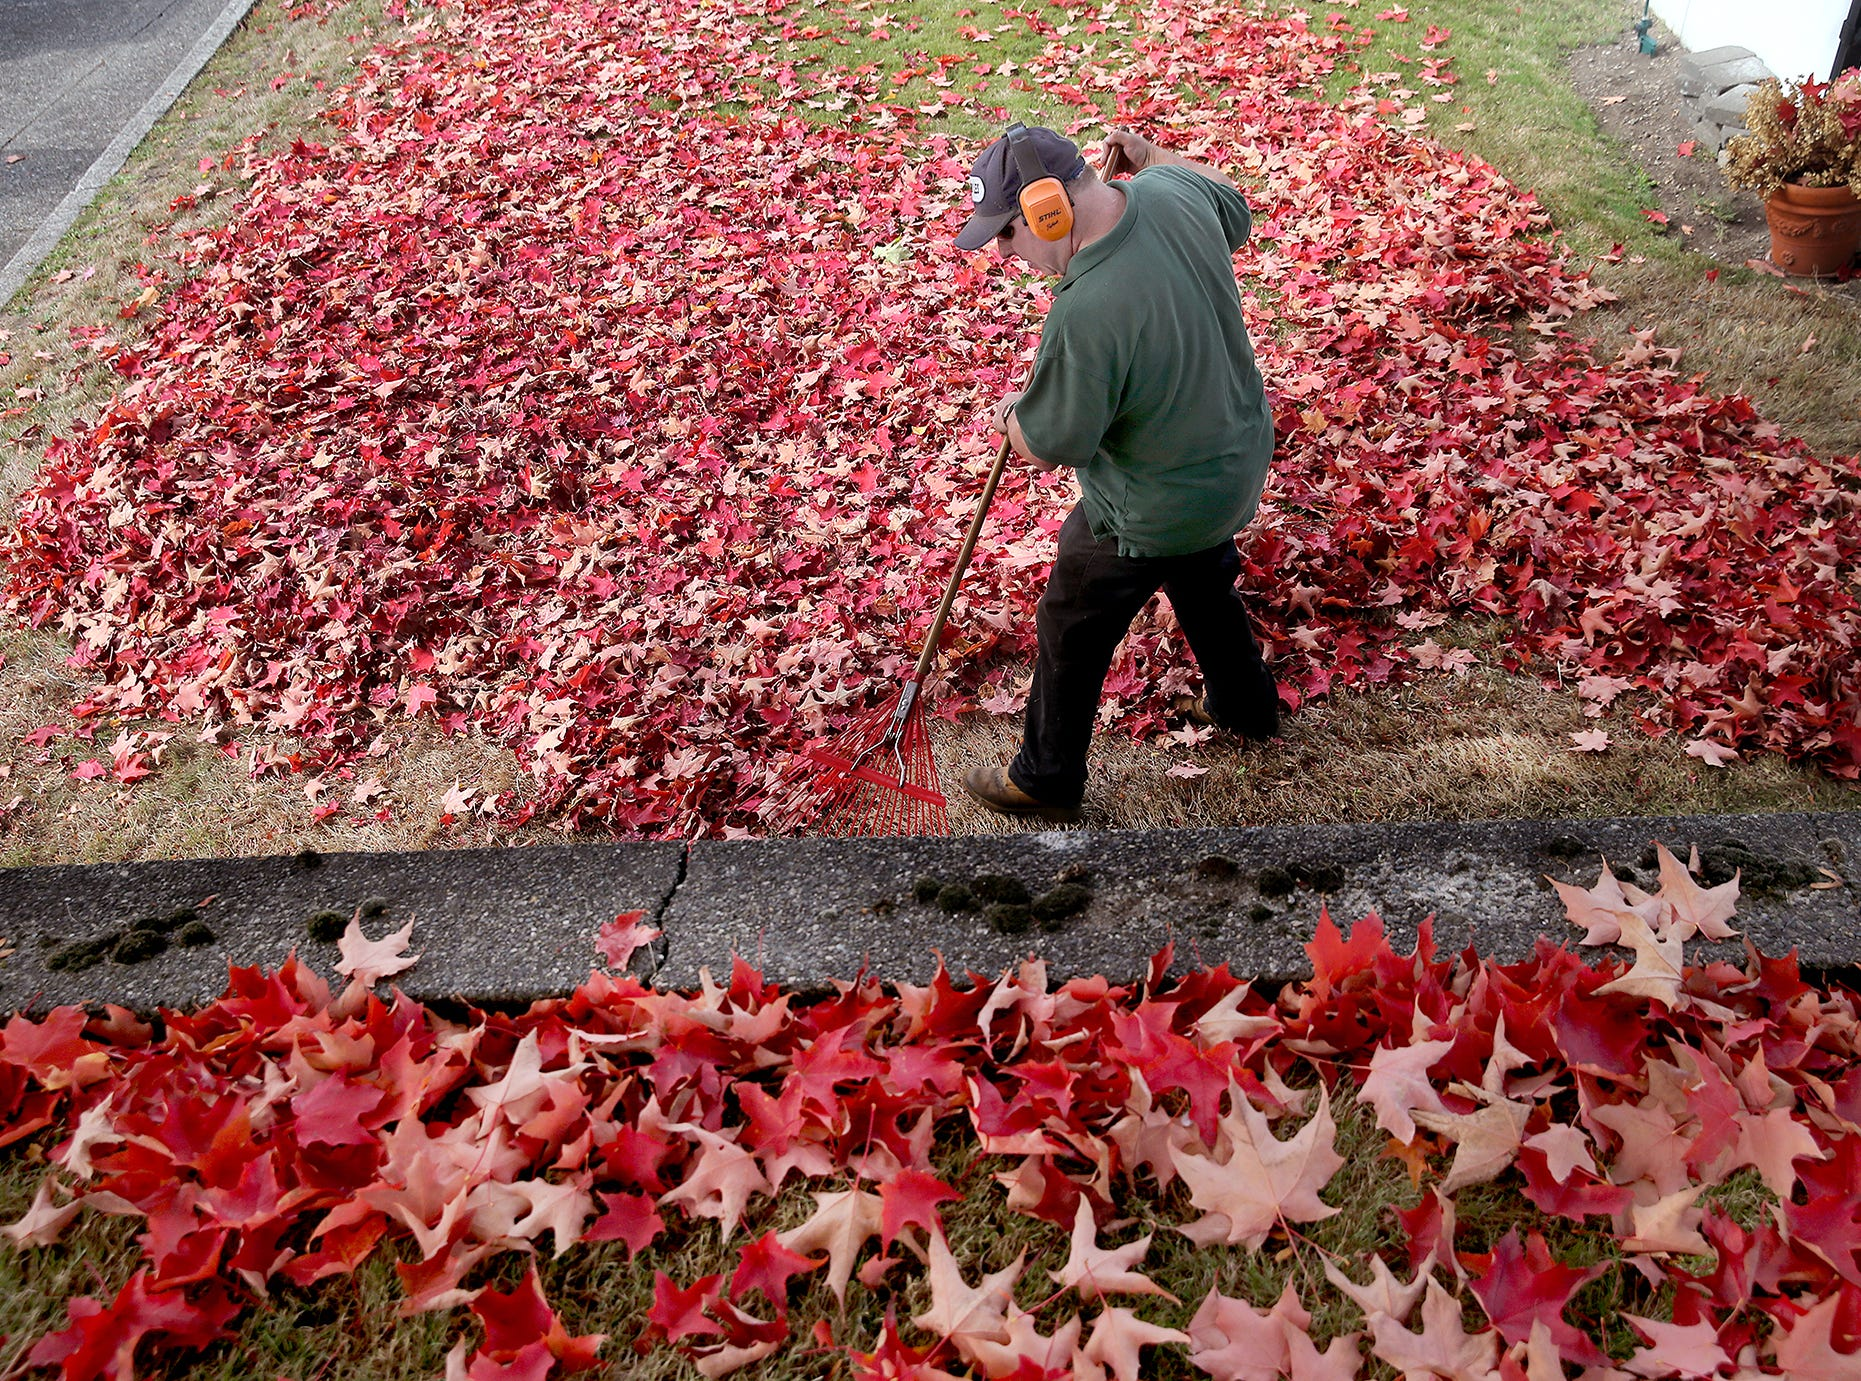 Les Hesseltine owner of Lawns by Les in Port Orchard rakes up fallen maple leaves in an East Bremerton yard on Wednesday, October 3, 2018.